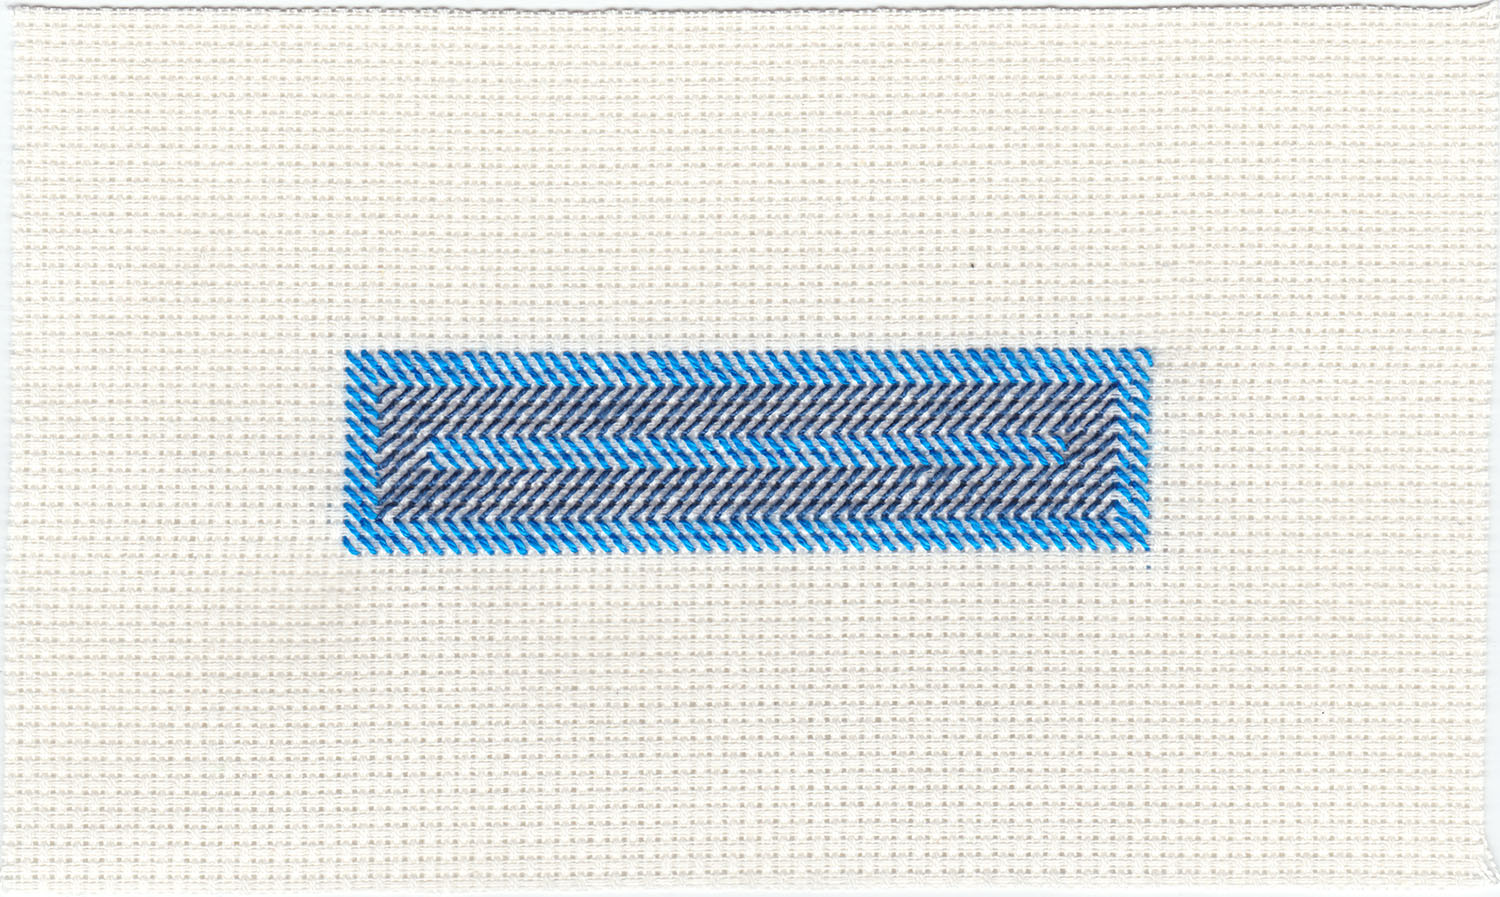 Colour Study in 576 Diagonal Stitches_7A_web.jpg